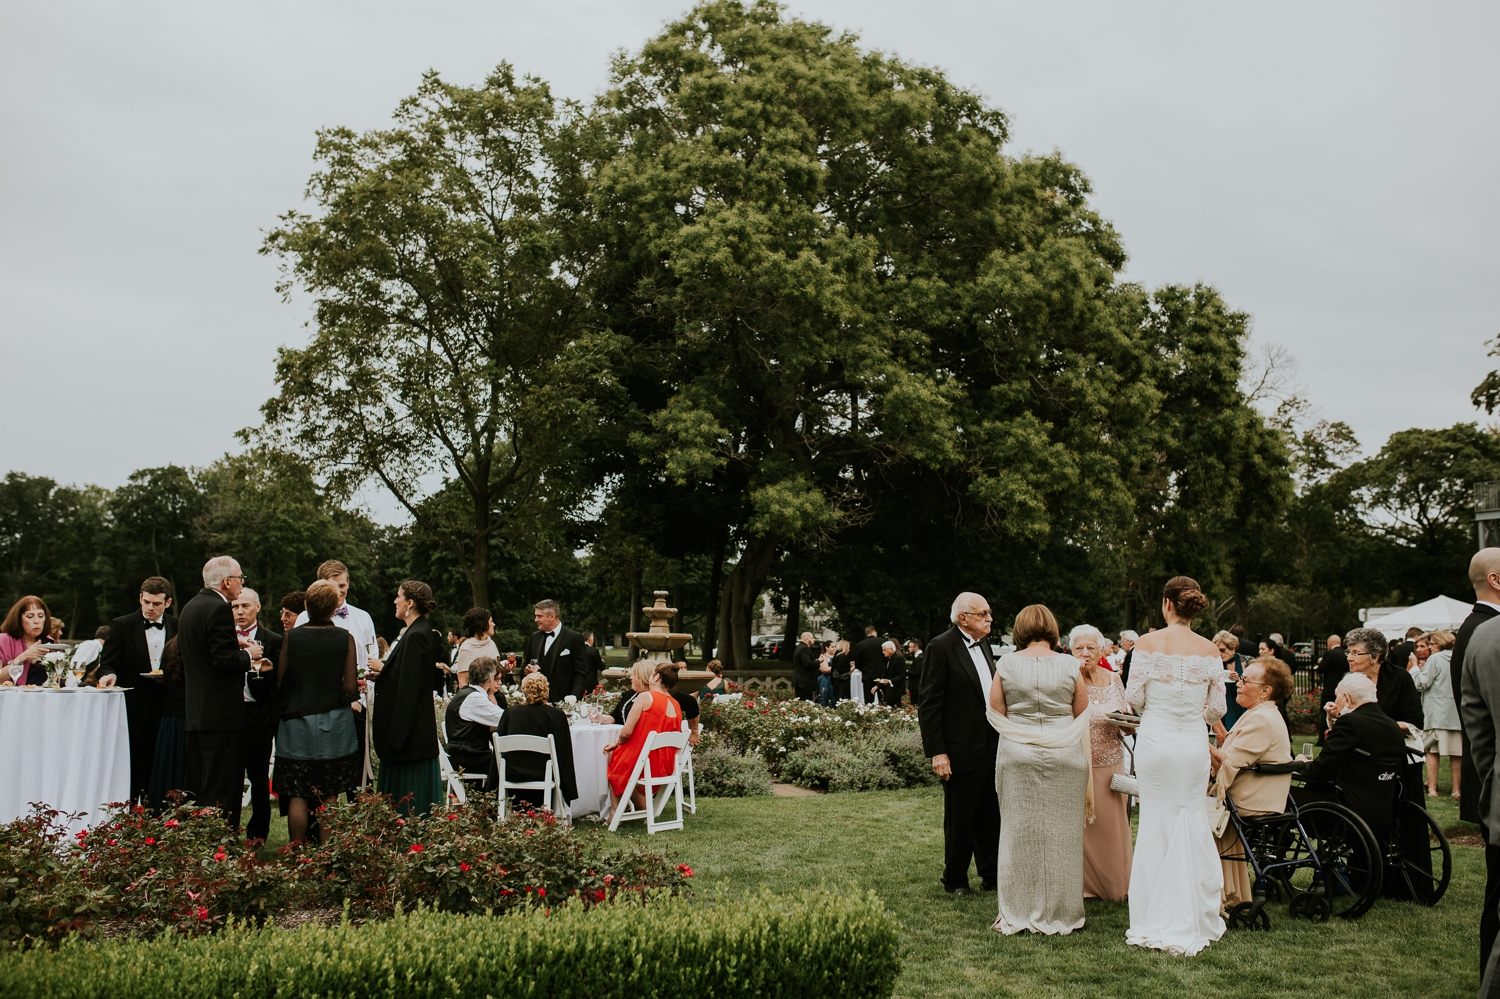 hempstead_house_new_york_wedding_photographer 85.jpg